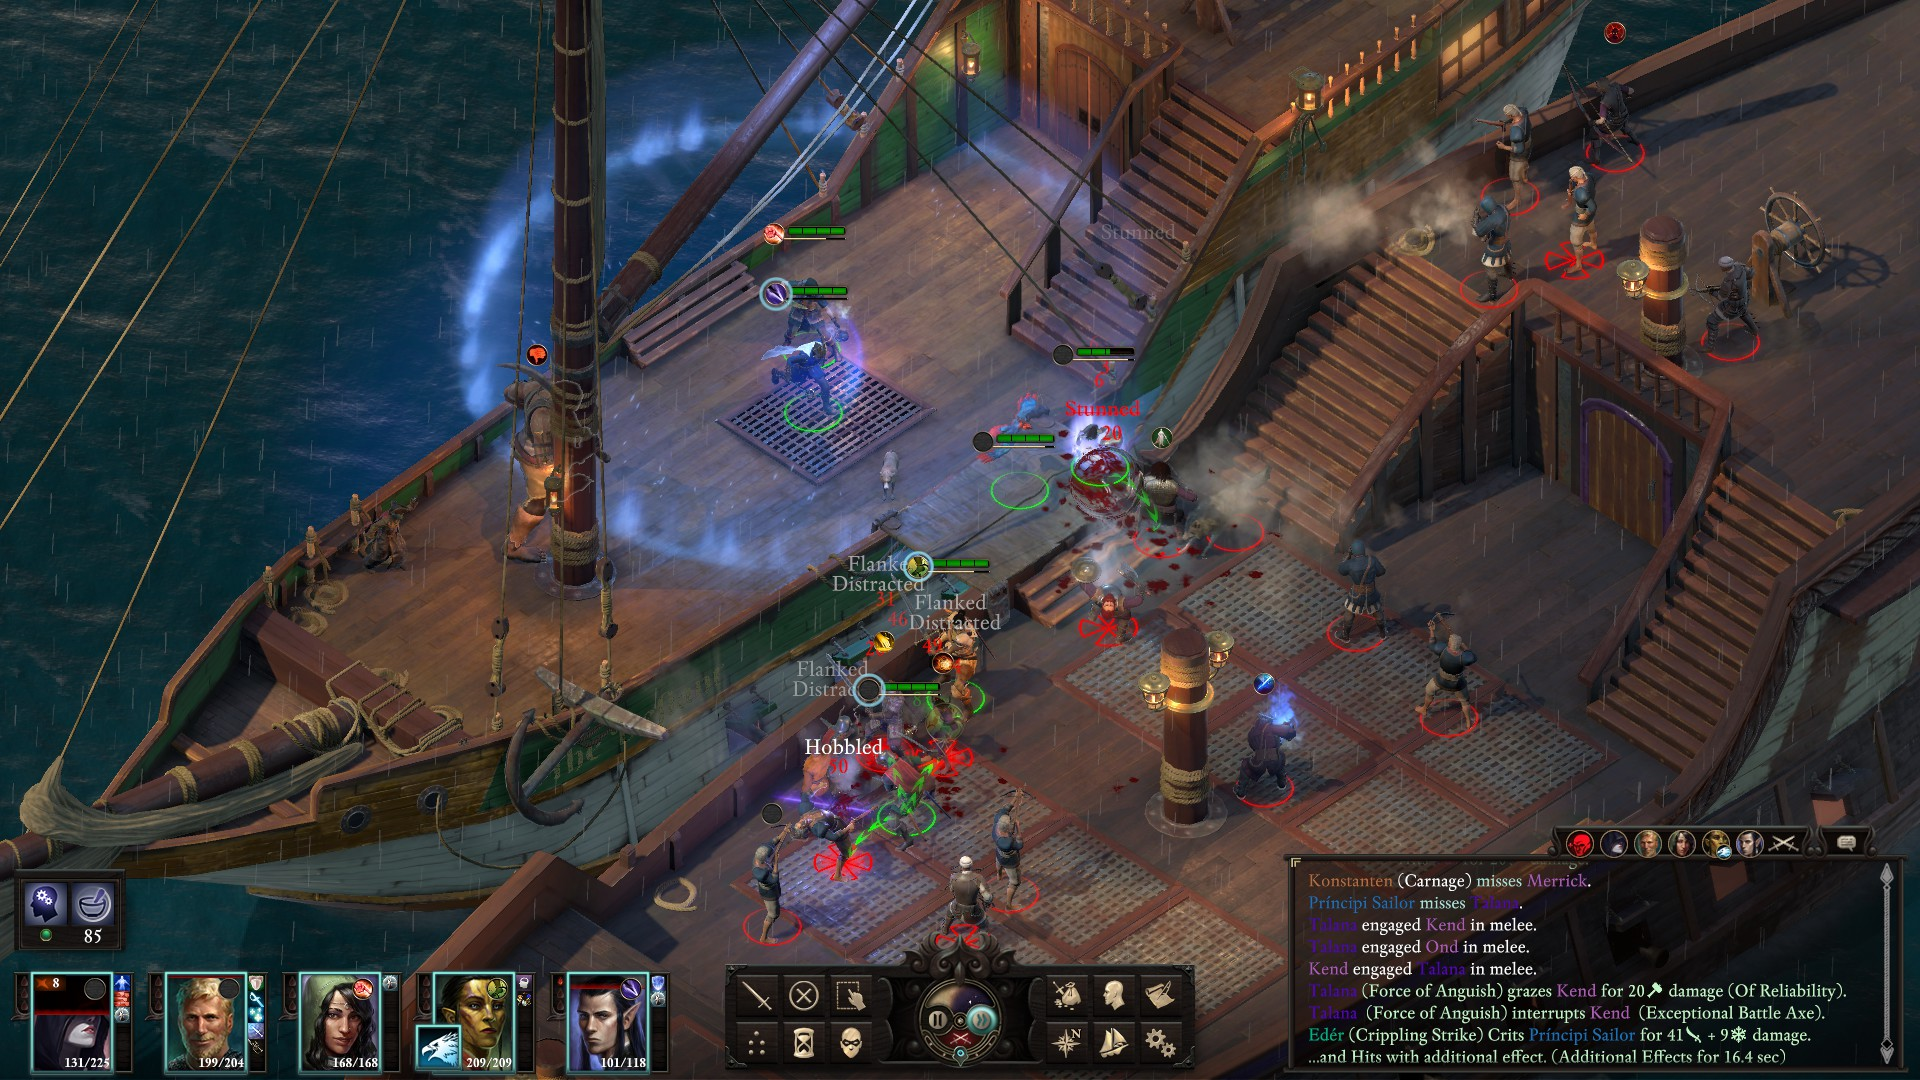 Pillars of Eternity 2: Deadfire Review - A Swashbuckling